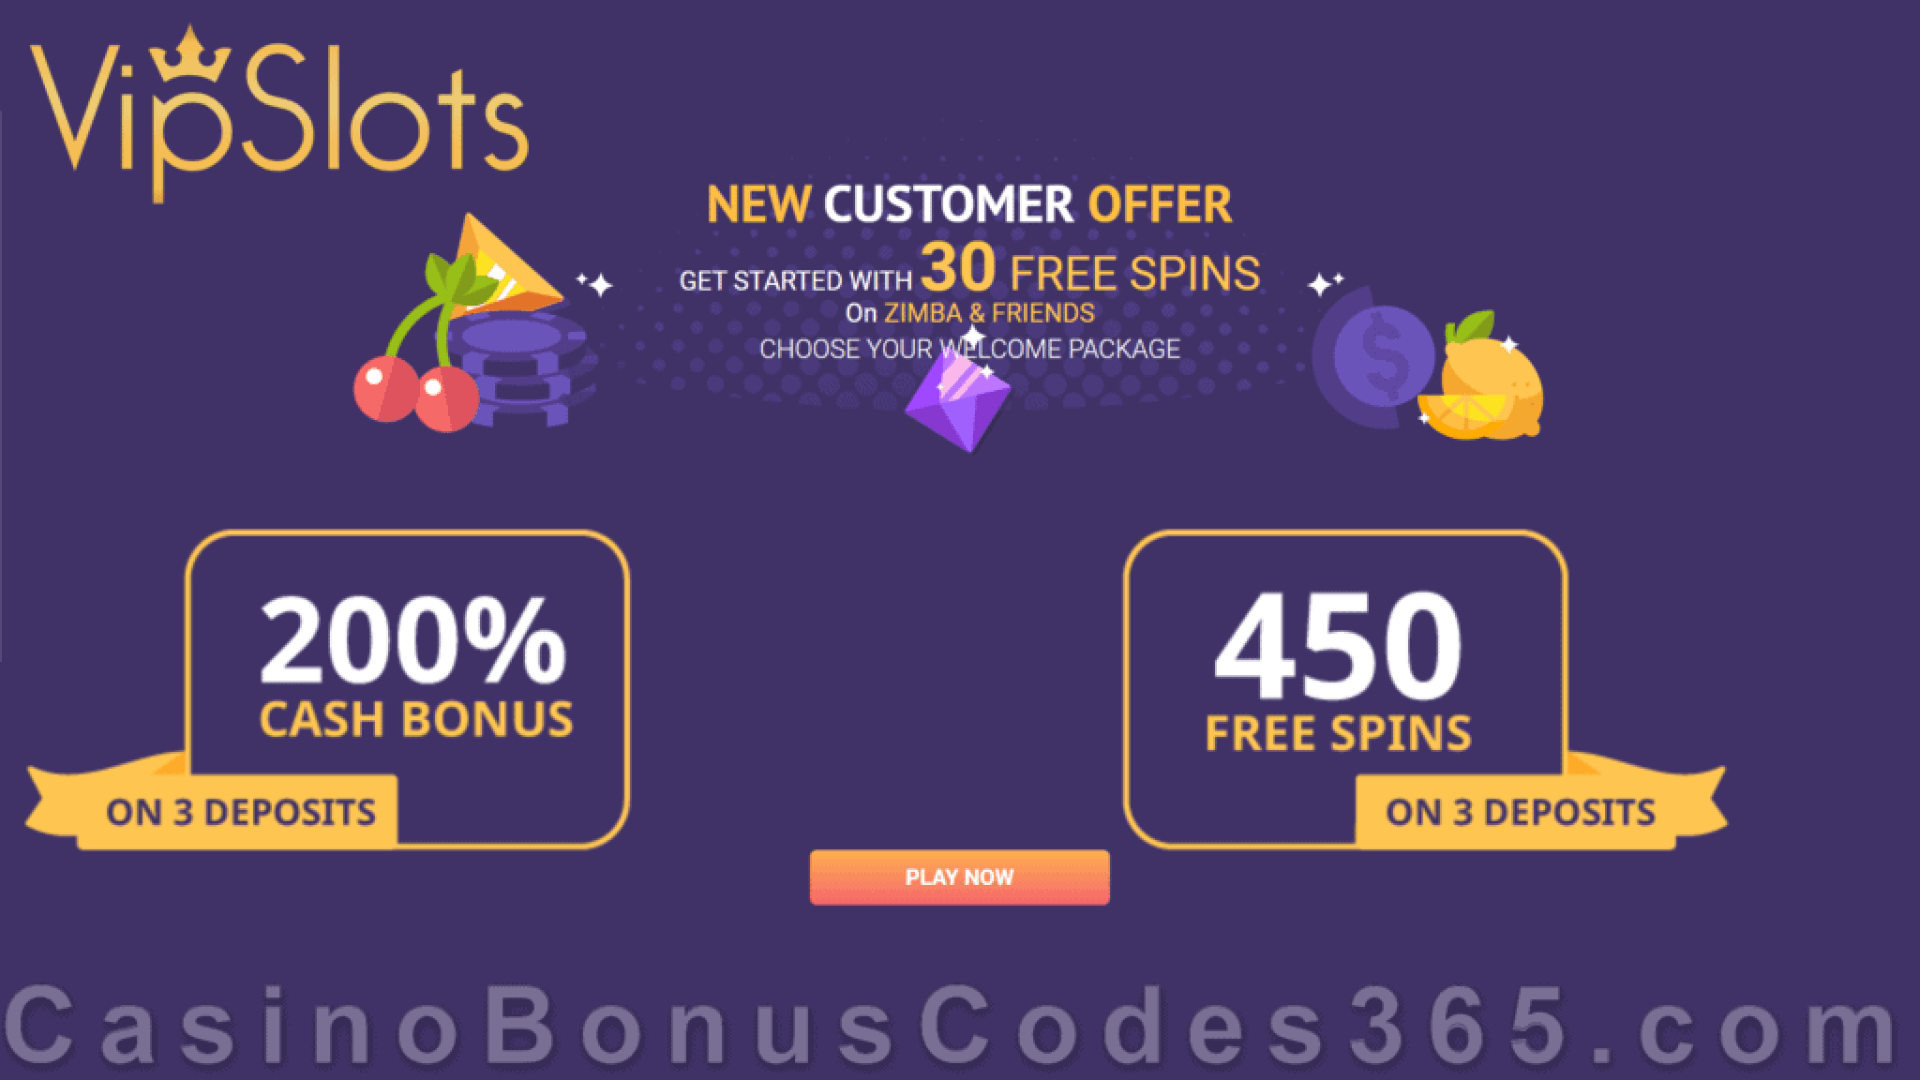 VipSlots Casino 30 No Deposit Welcome FREE Spins and $1500 Bonus or 450 FREE Spins Welcome Package